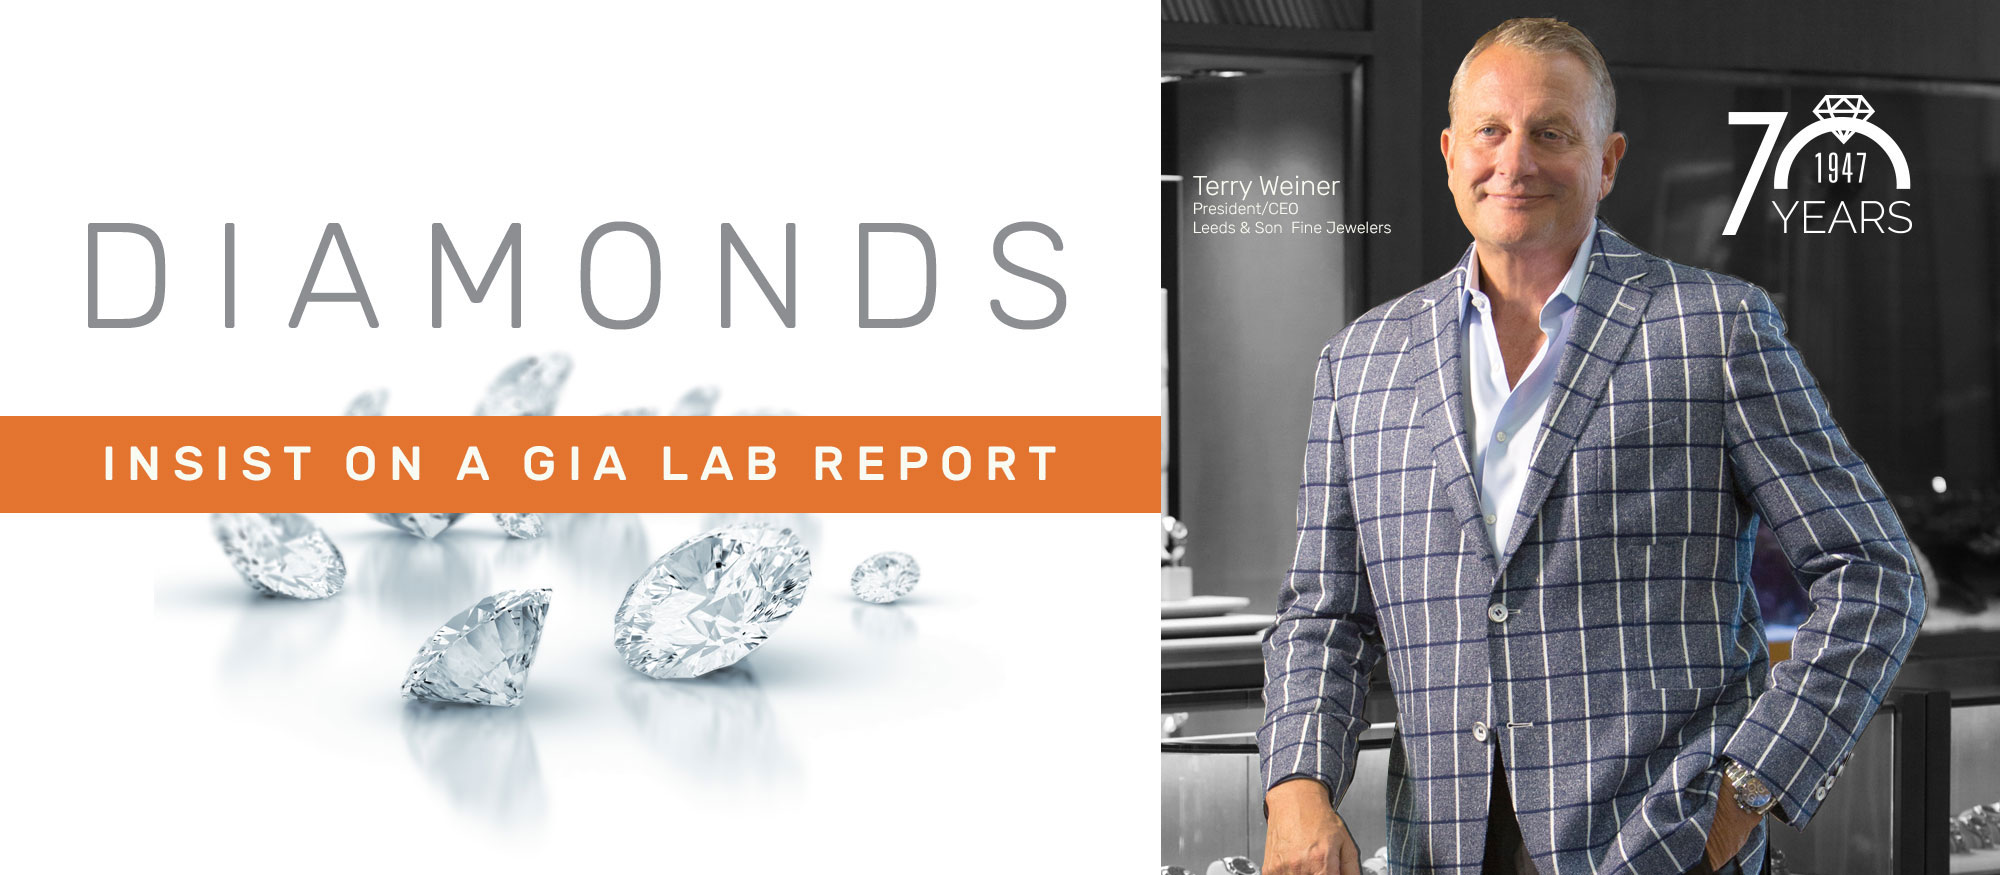 Diamonds - insist on a GIA lab report